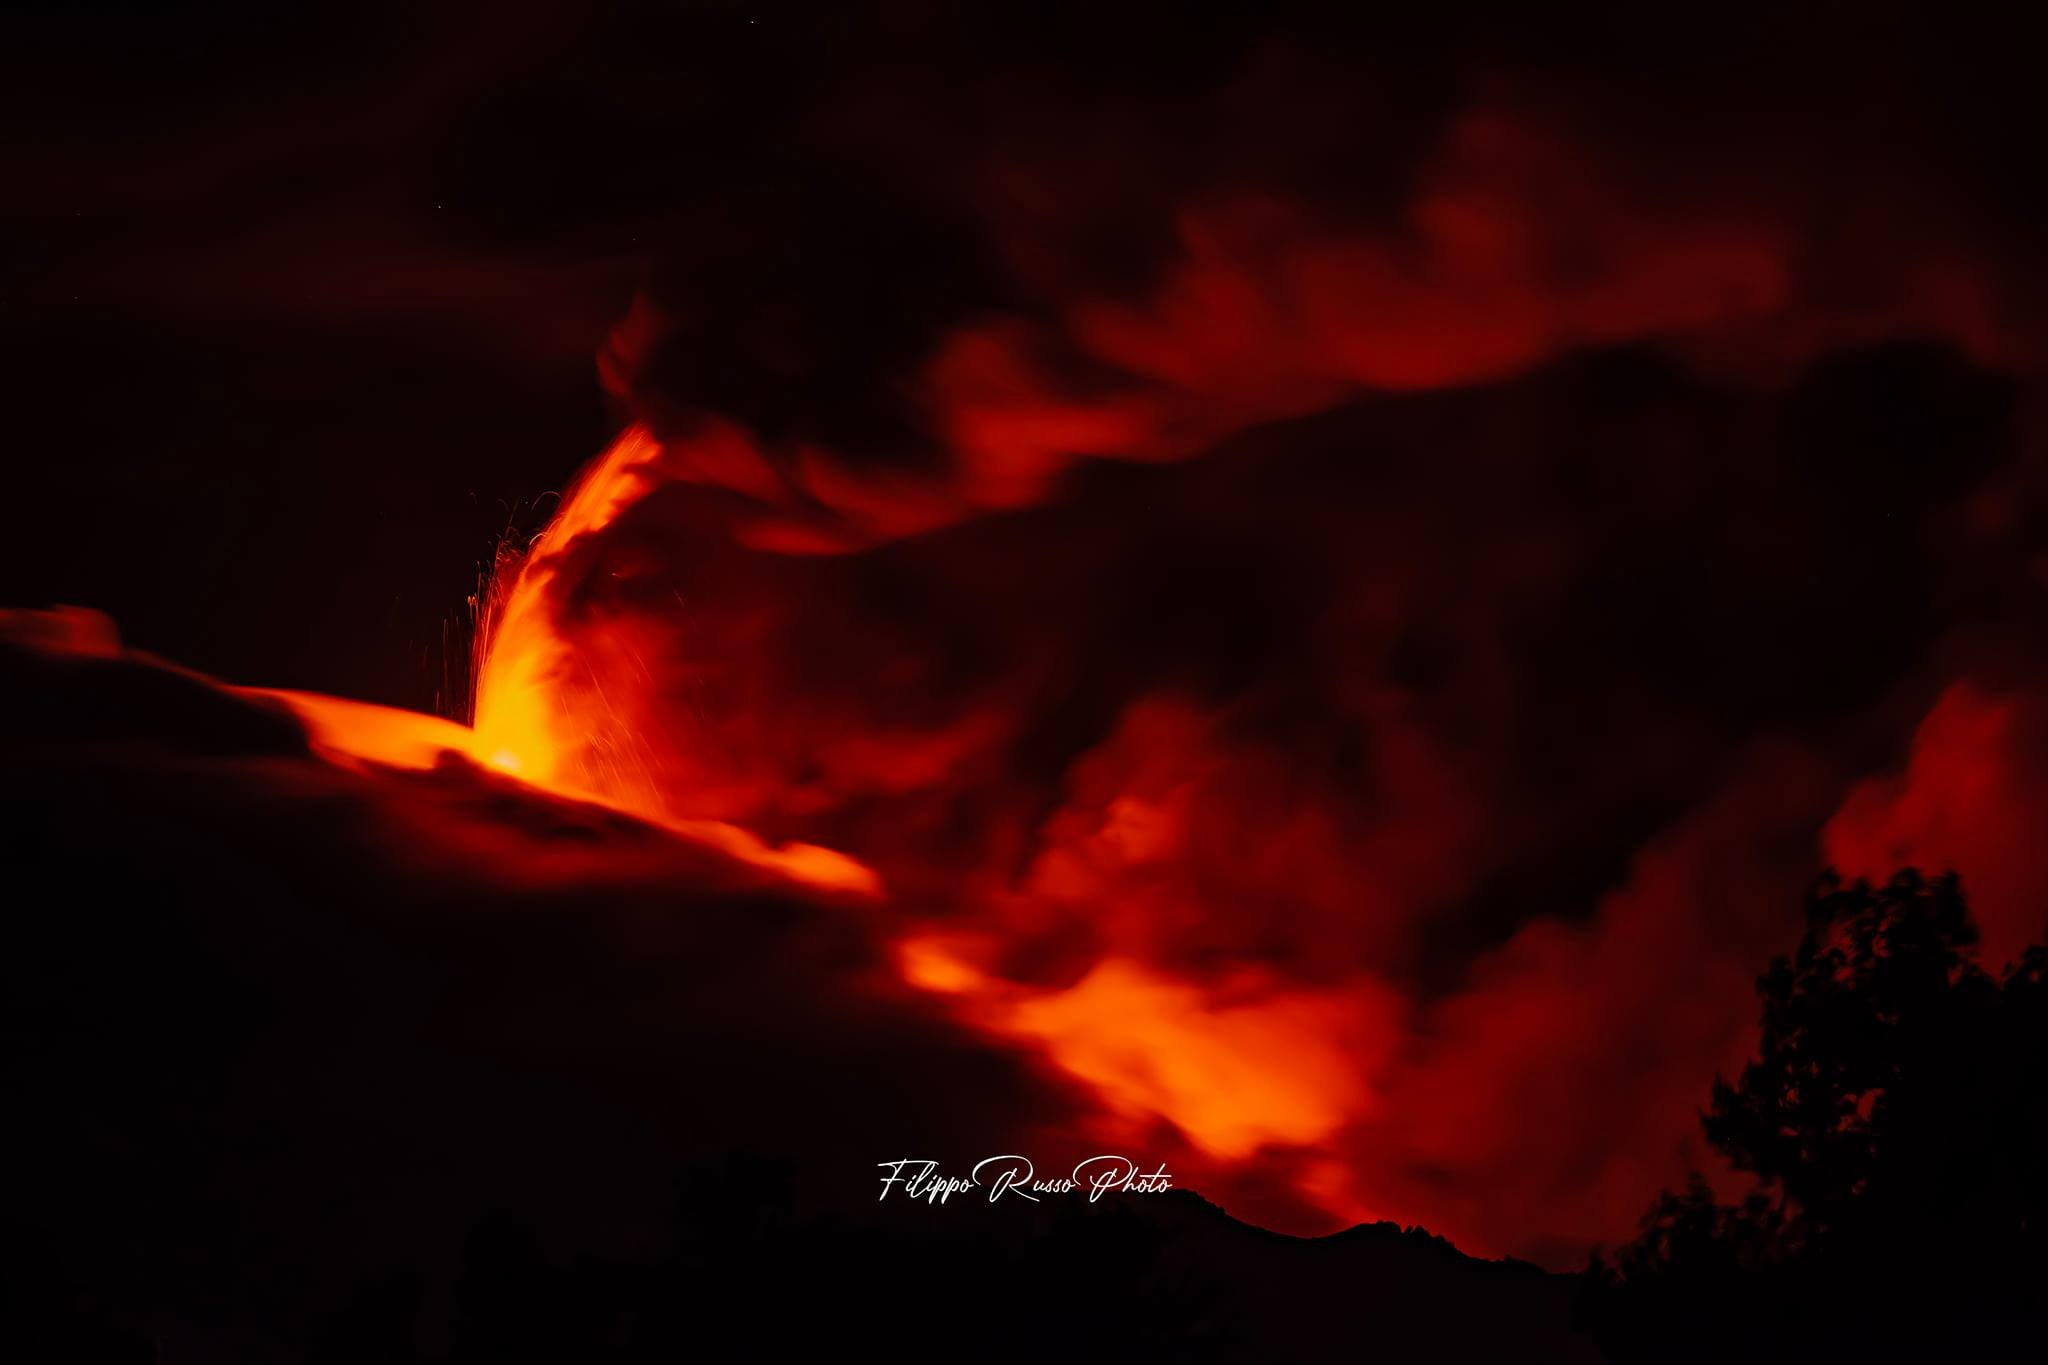 11th eruption, 10th mar 2021. Painting a fountain of lava, F. Russo